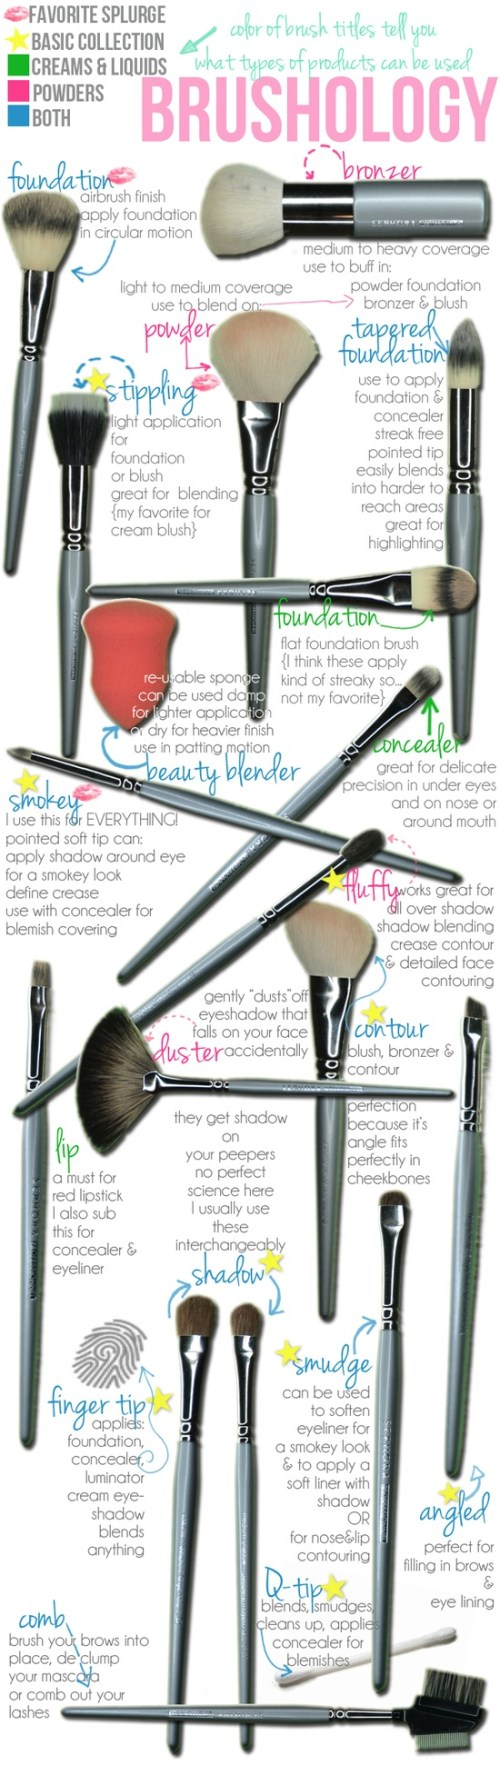 Different types of makeup and their uses